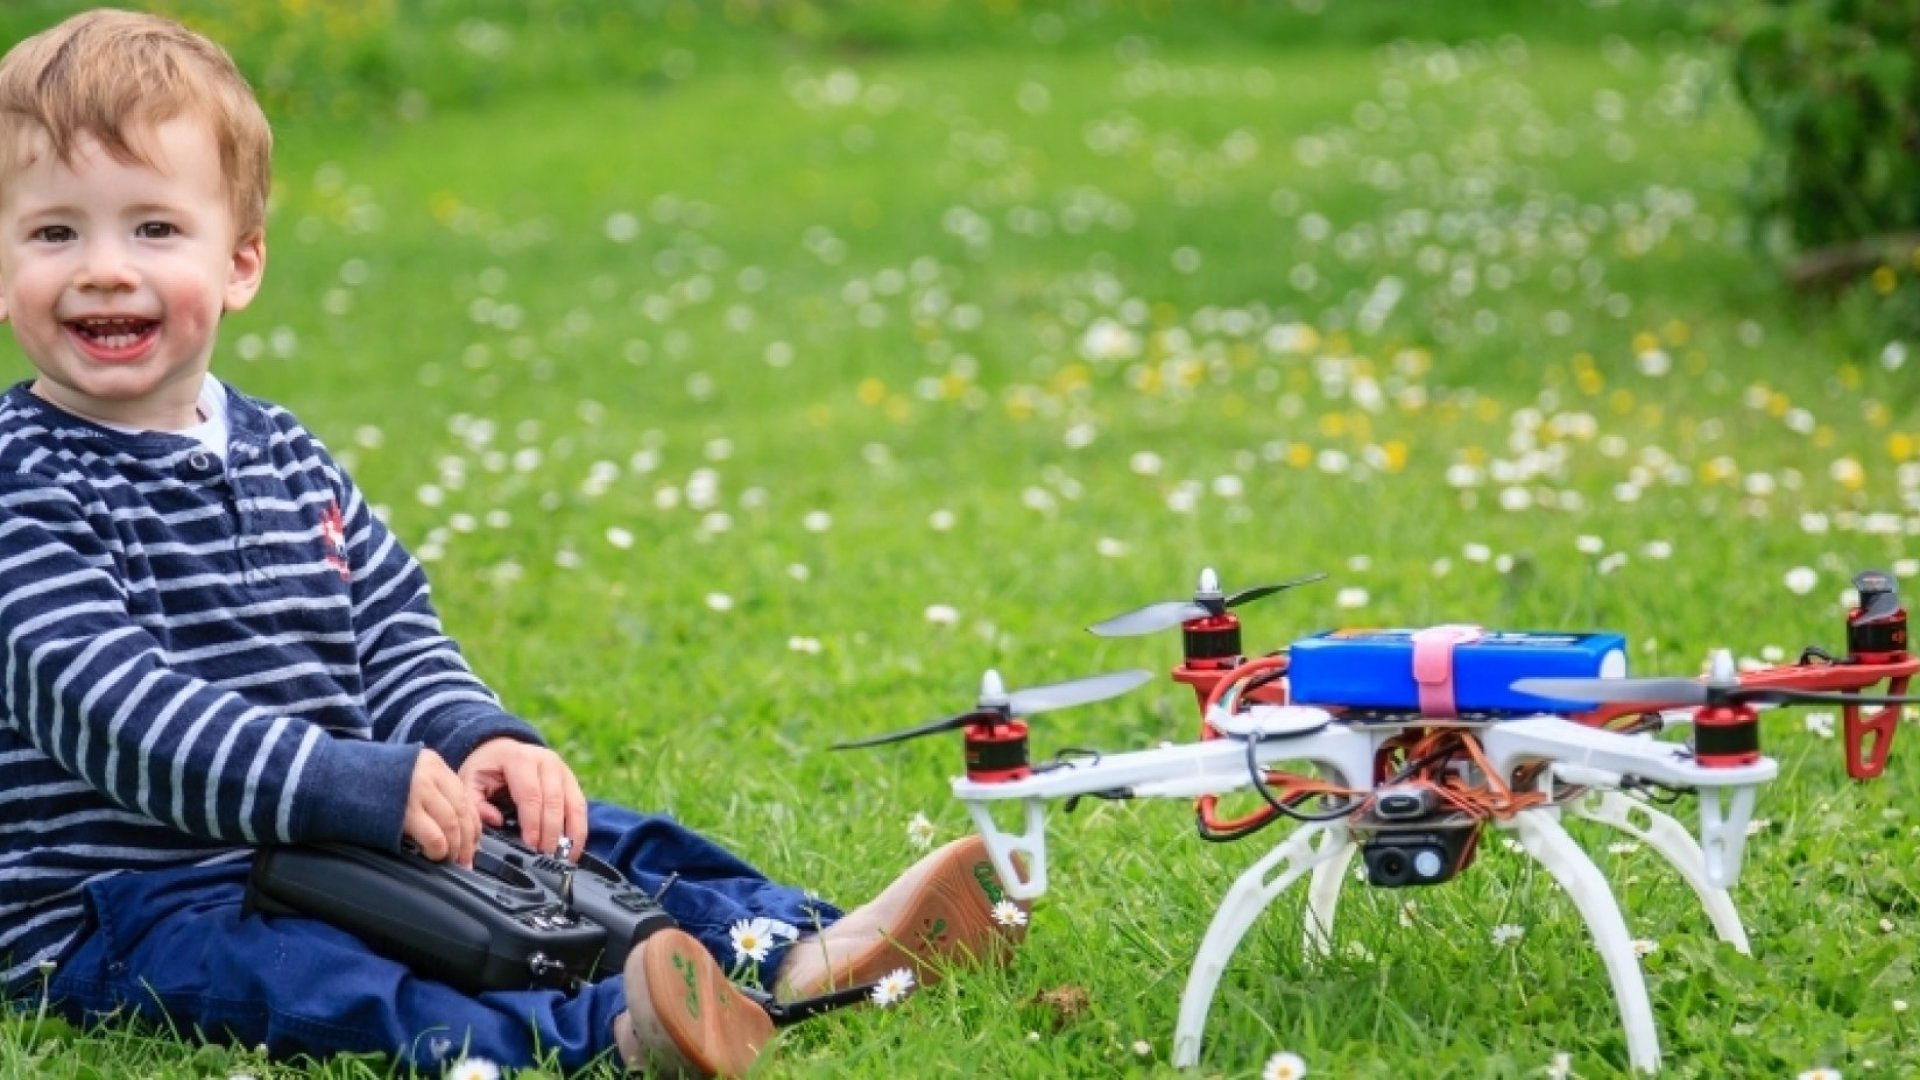 6 Drone Companies to Look Out For in 2015